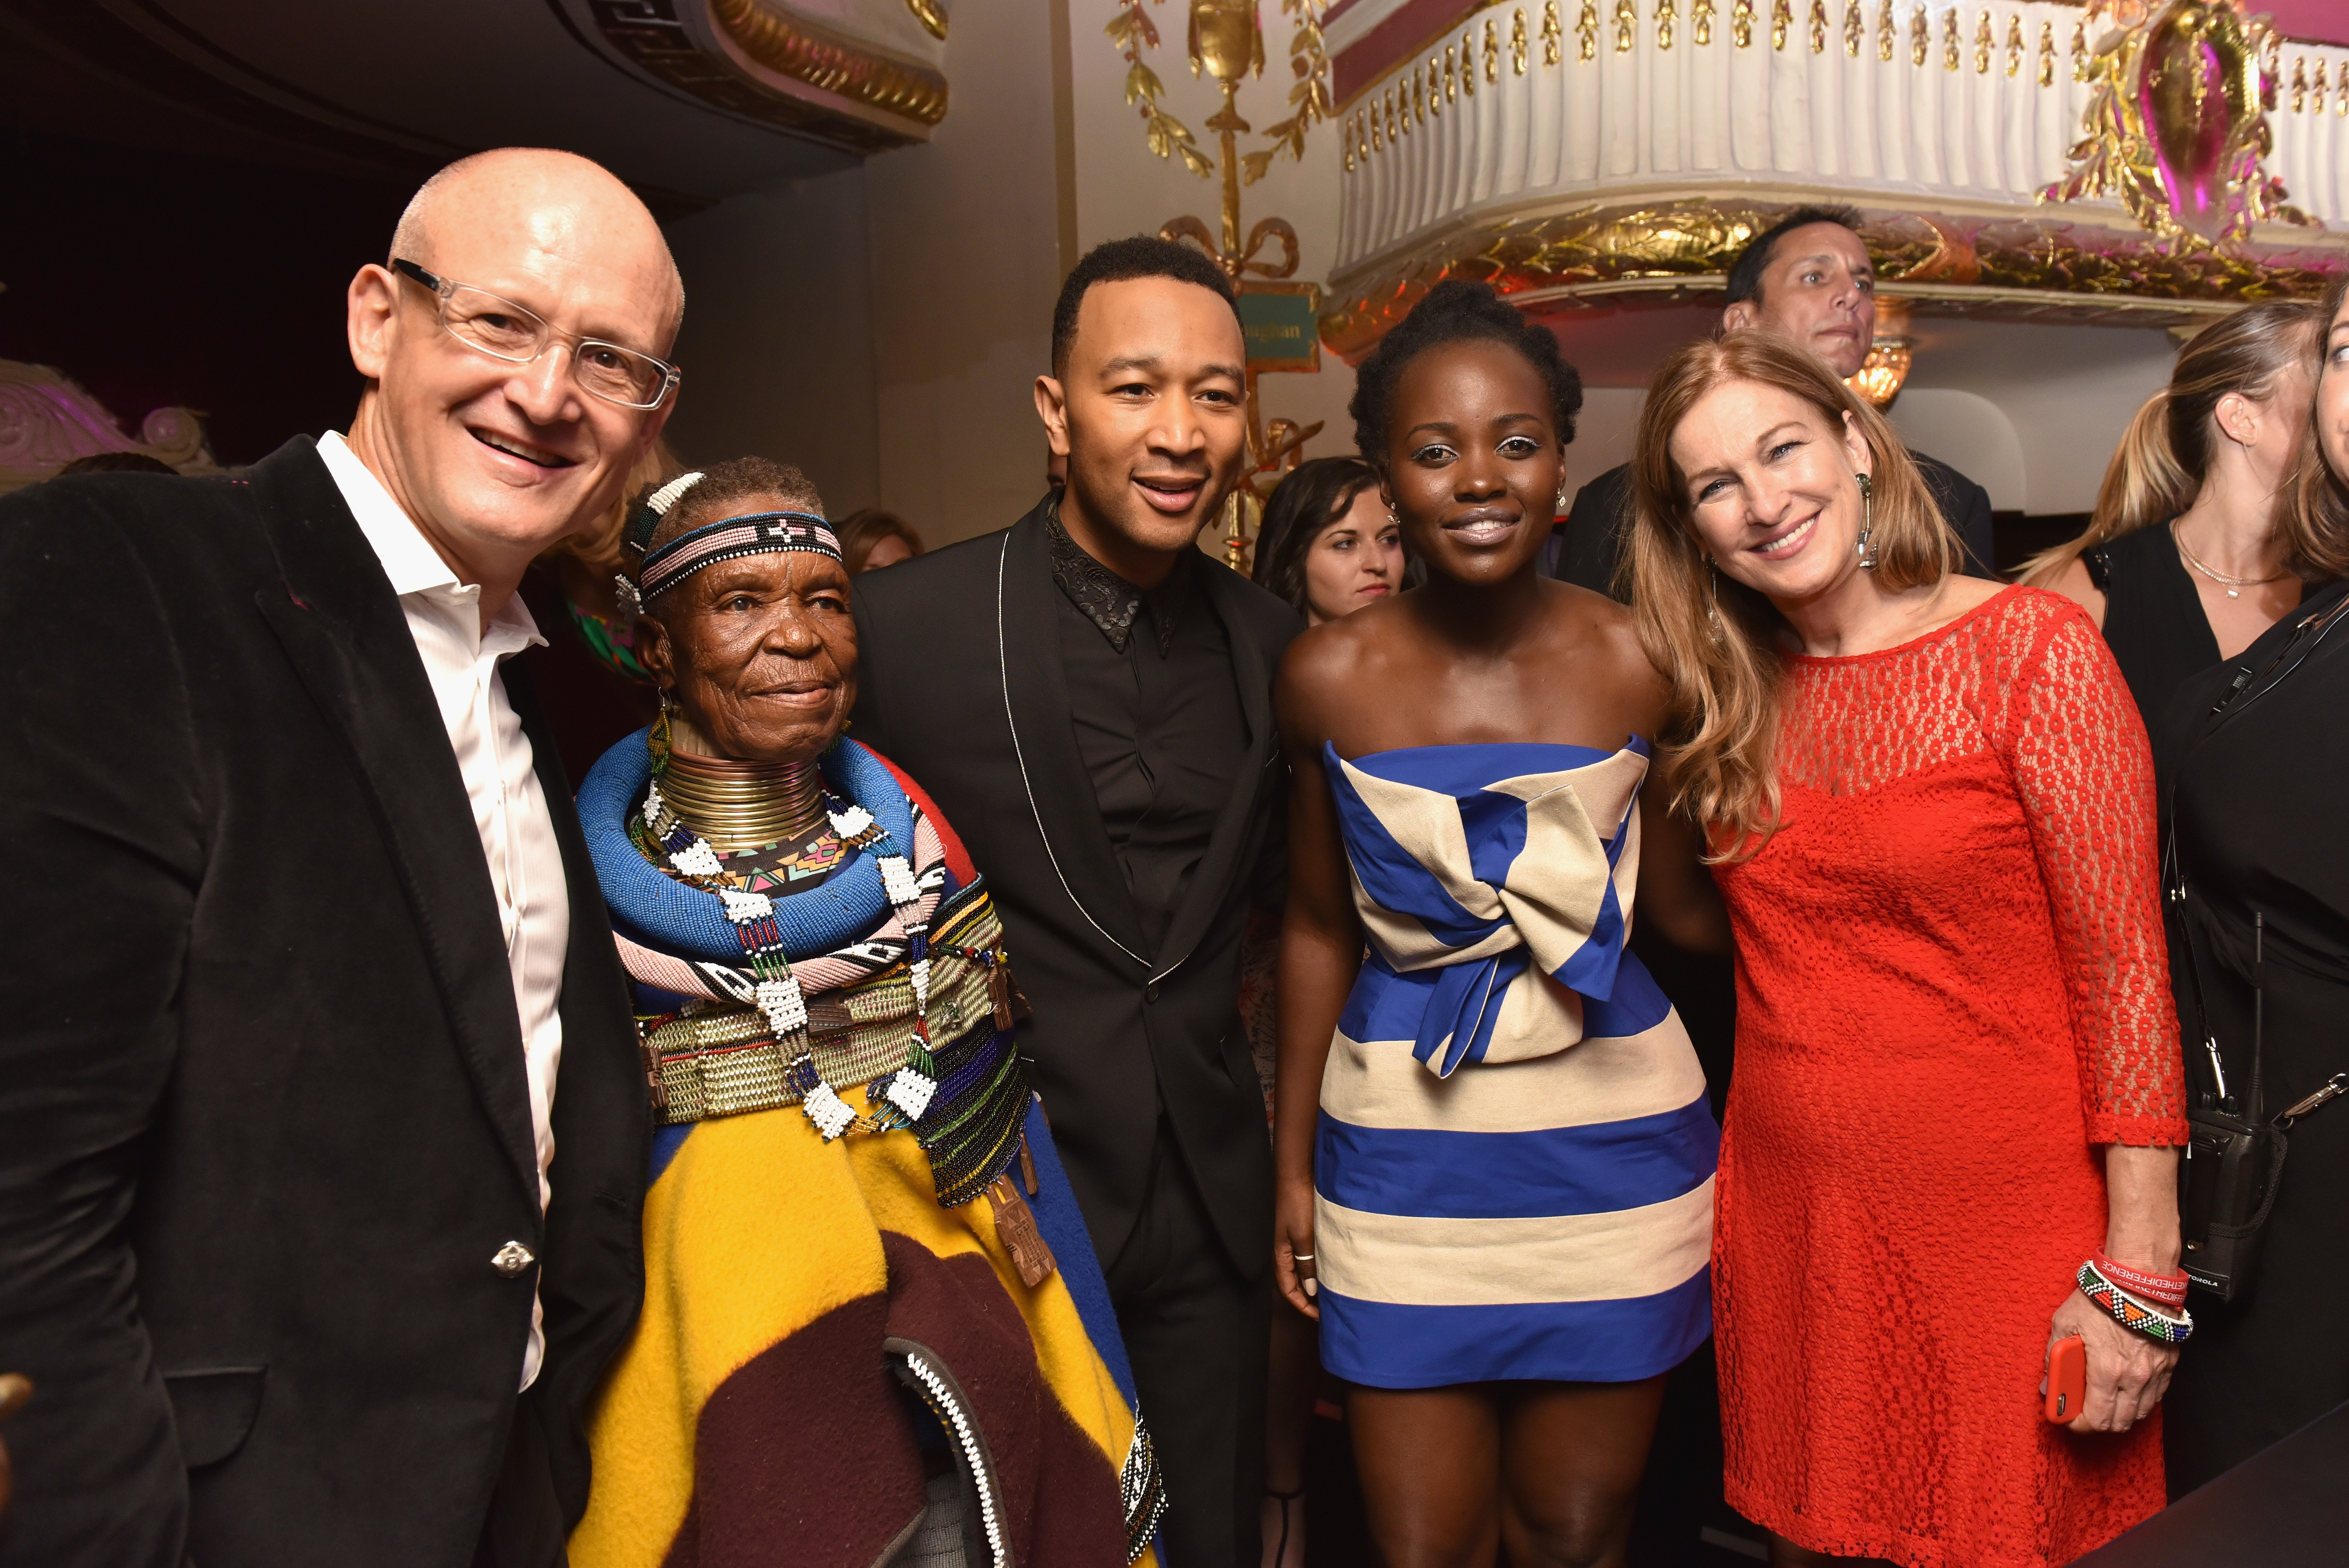 NEW YORK, NY - AUGUST 27: President of Belvedere Vodka, Charles Gibb, artist Esther Mahlangu, recording artist John Legend, actress Lupita Nyong'o, and CEO of (RED) Deborah Dugan attend the Belvedere Presents One Night for Life with John Legend at the Apollo Theater at The Apollo Theater on August 27, 2016 in New York City. (Photo by Jared Siskin/Patrick McMullan via Getty Images)